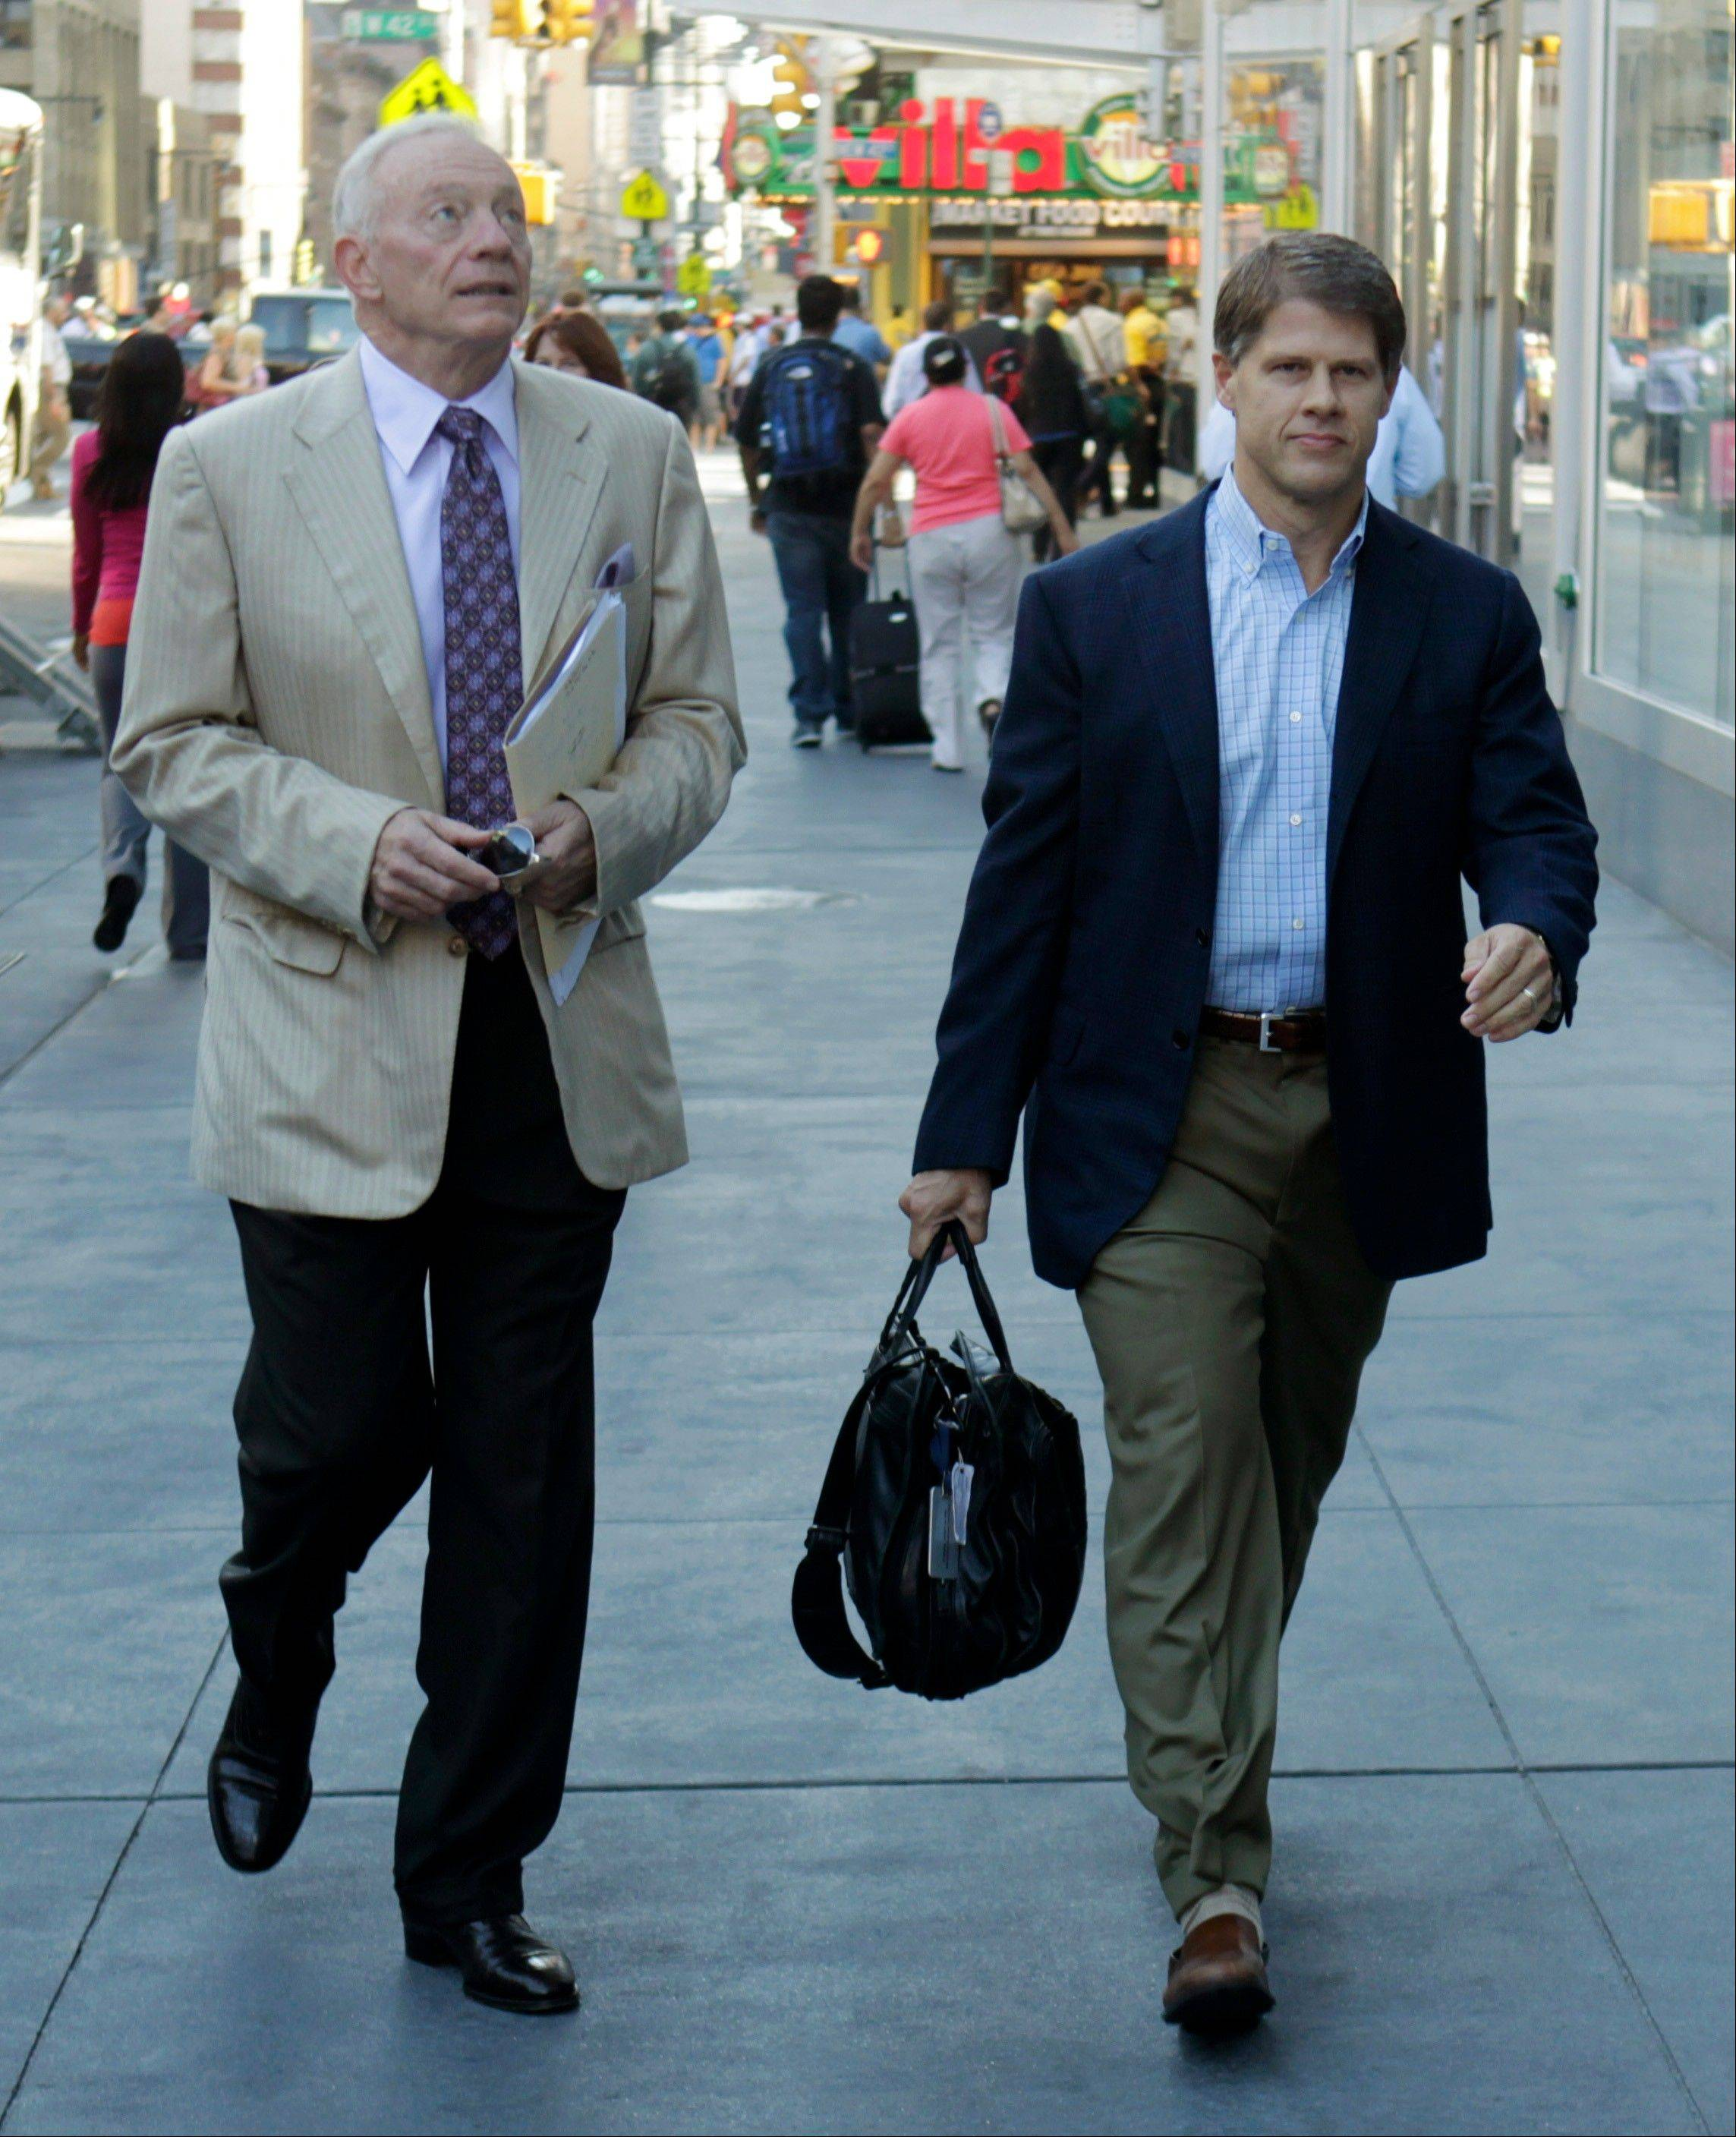 Dallas Cowboys owner Jerry Jones, left, and Kansas City Chiefs owner Clark Hunt arrives at a Manhattan law firm Thursday. With time running short to keep the NFL's preseason completely intact, owners and player representatives are back in force, trying again to work out a new labor deal.